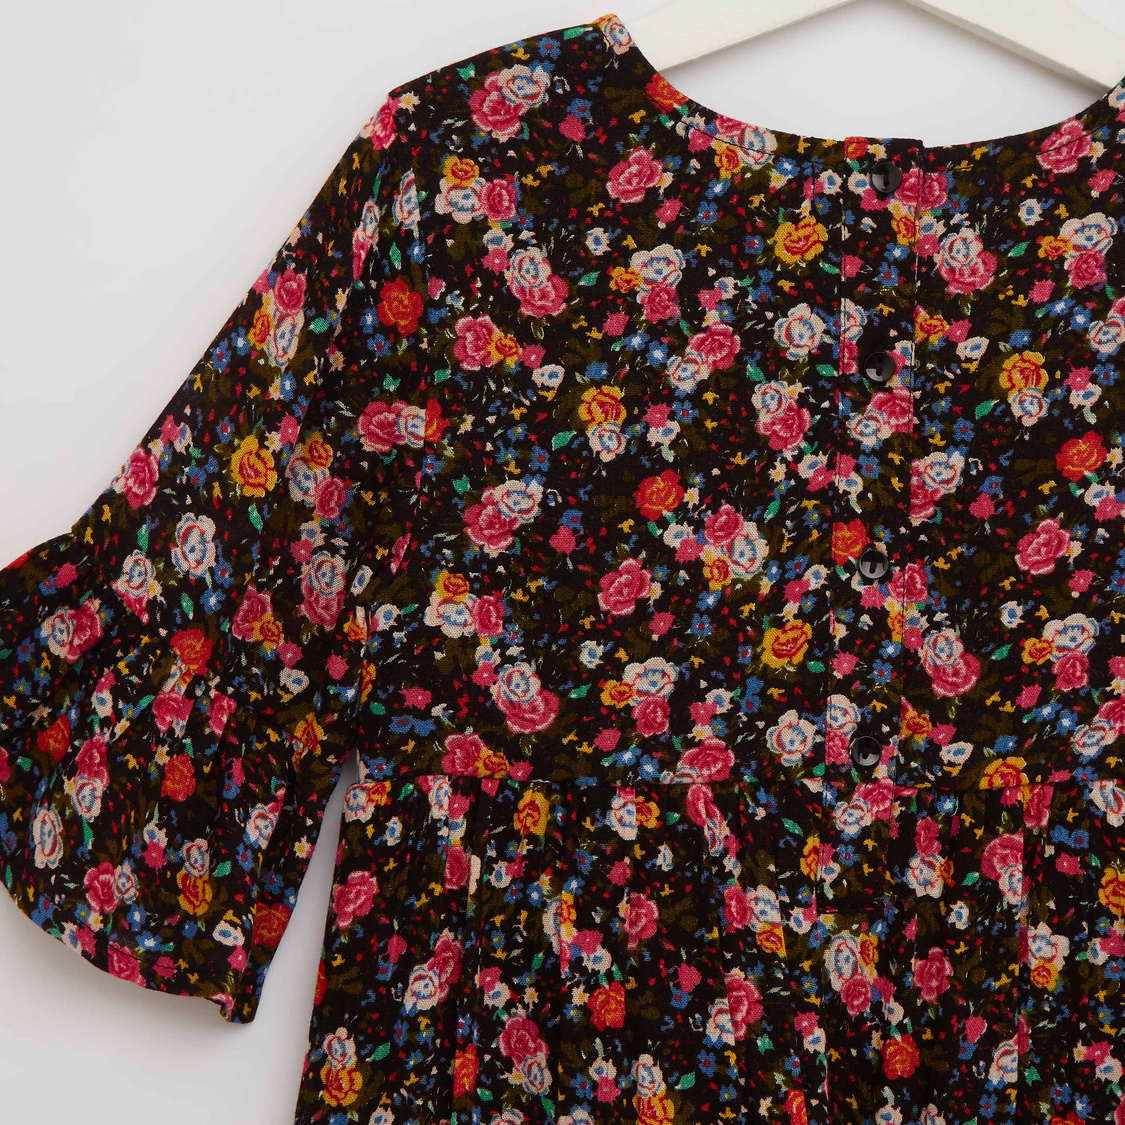 Floral Print Round Neck Tiered Dress with Long Sleeves